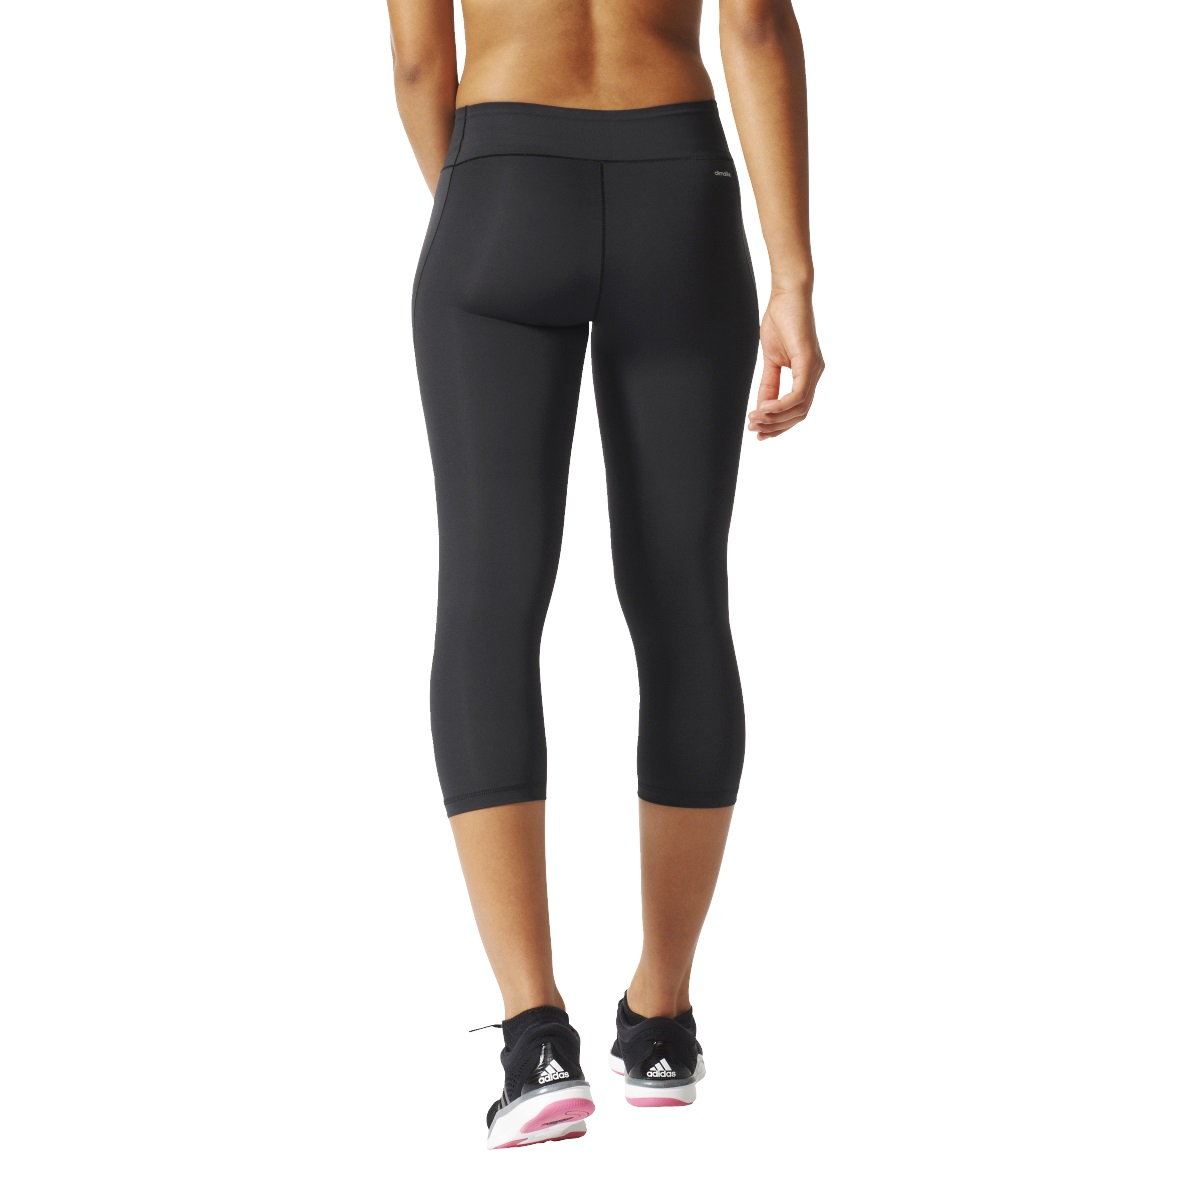 adidas workout 3 4 tight capri damen fitness hose schwarz ai3740 sport klingenmaier. Black Bedroom Furniture Sets. Home Design Ideas